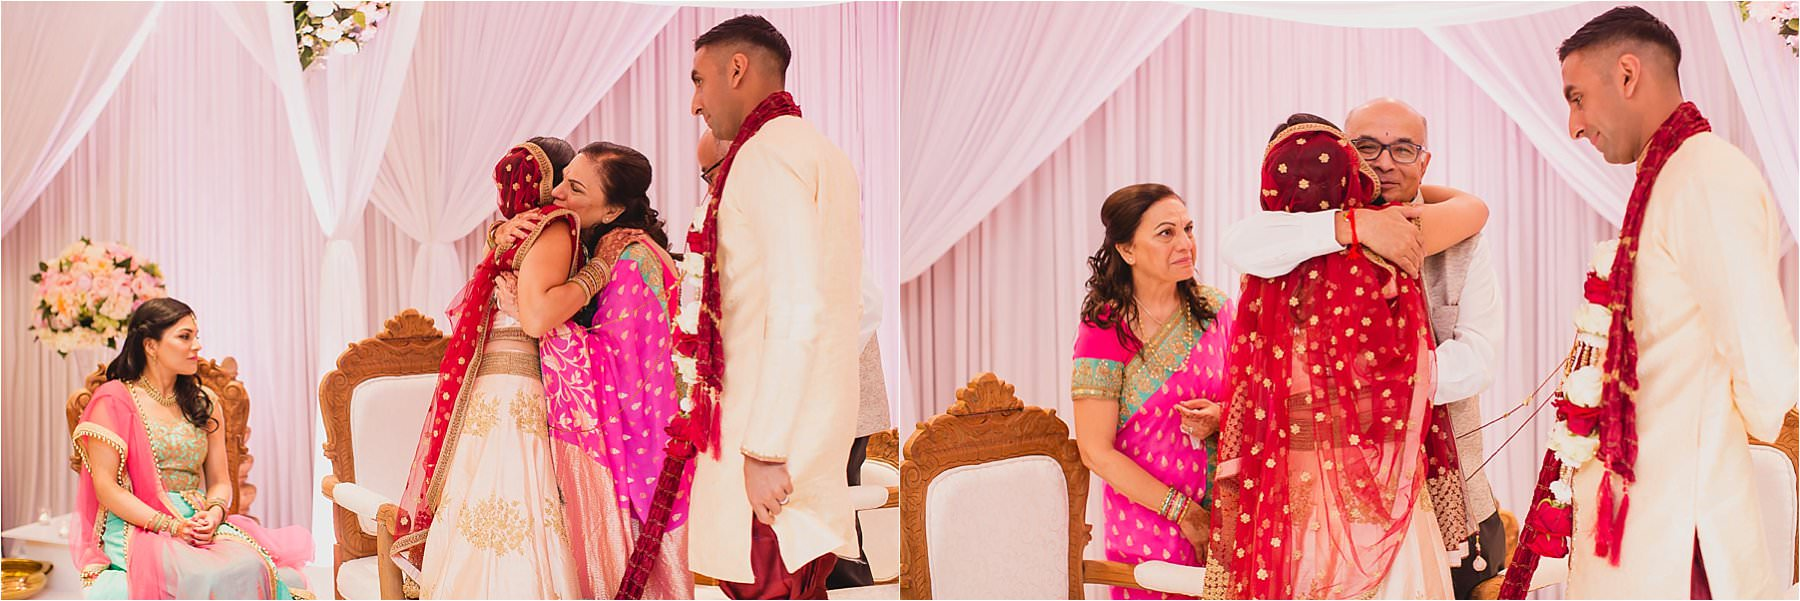 asian Indian wedding Photography London